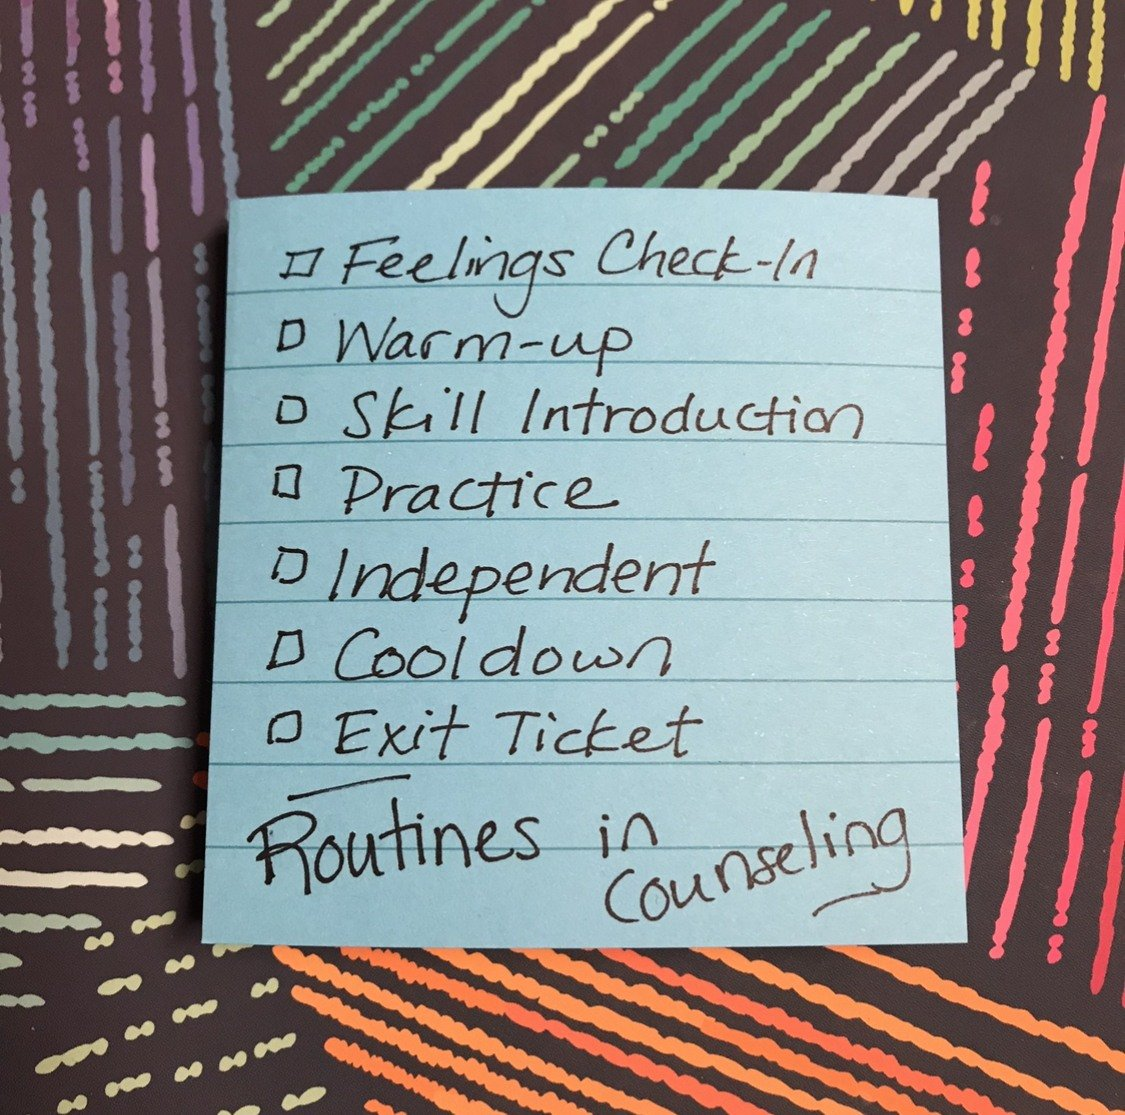 Routines in Counseling